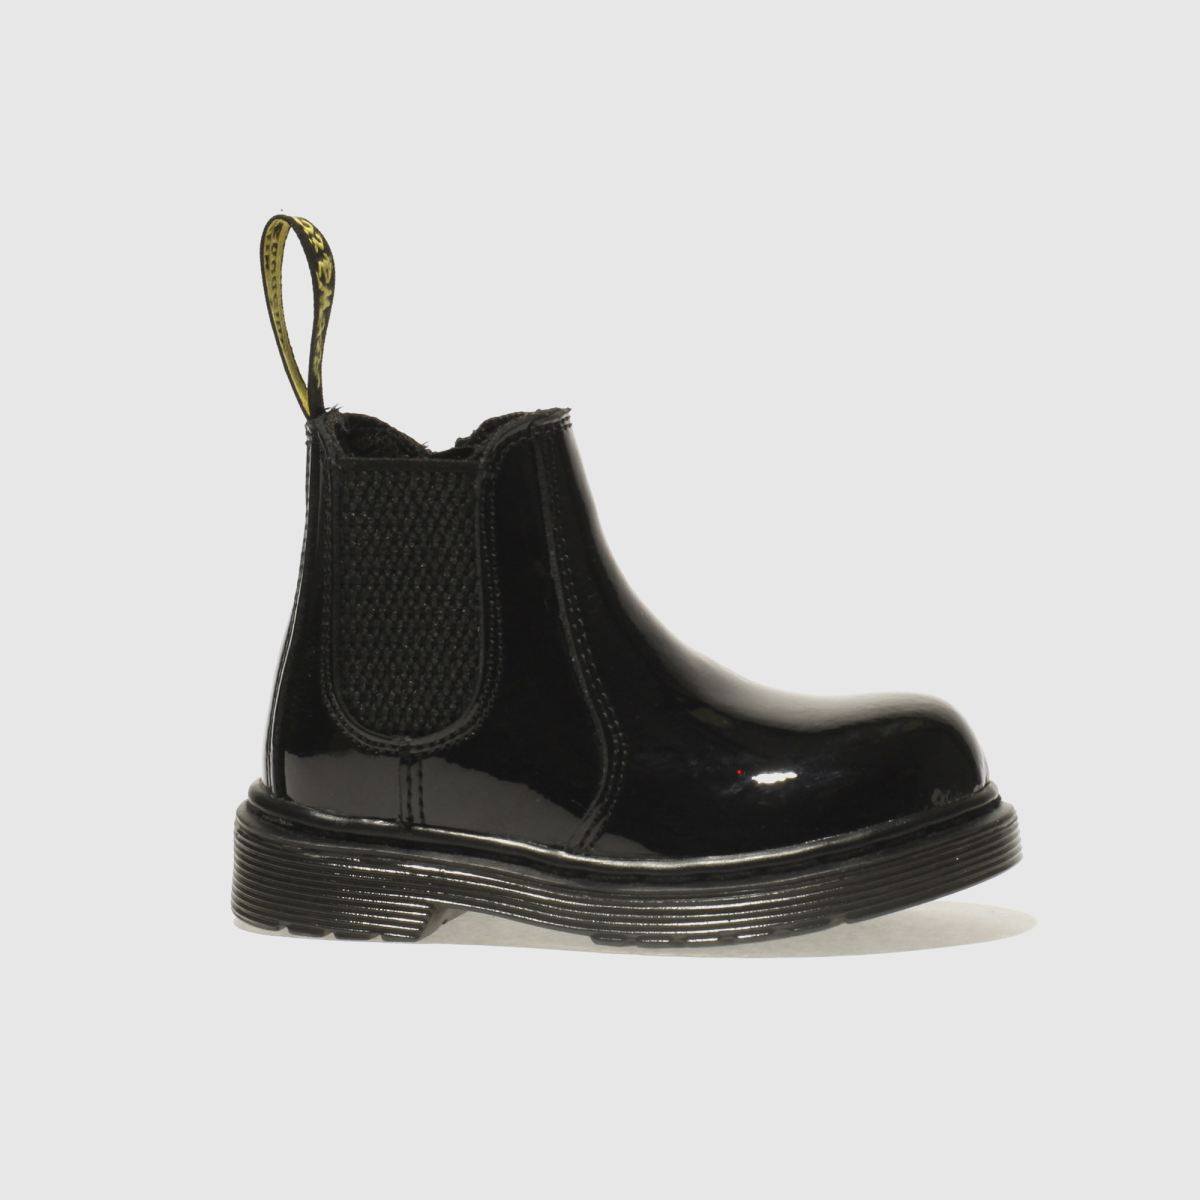 Dr Martens Black 2976 Boots Toddler